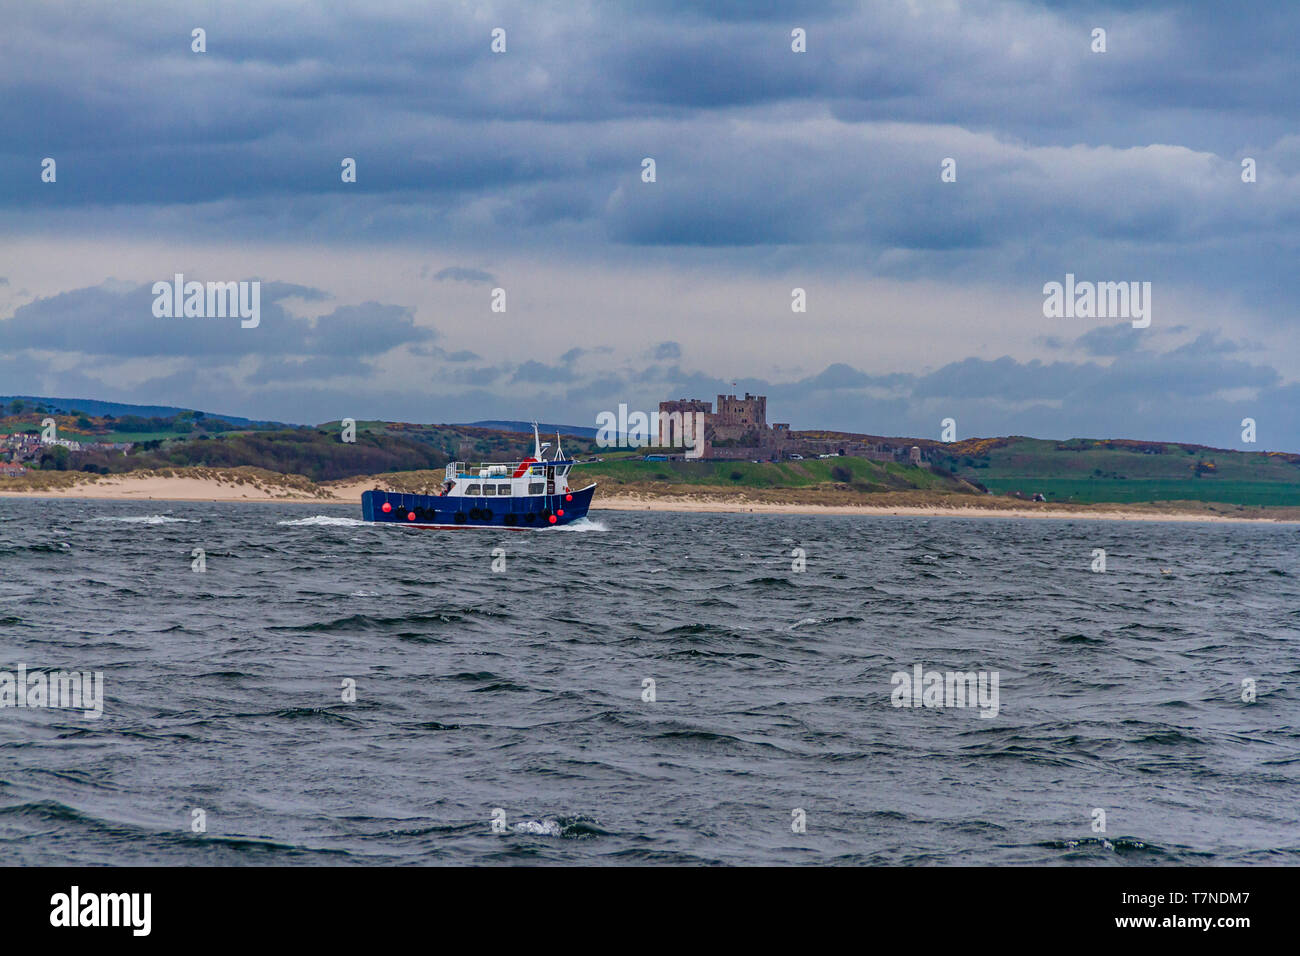 Bamburgh Castle and former fishing boat taking tourists from Seahouses to the Farne Islands to look for birds and seals, Northumberland, UK. May 2018. Stock Photo